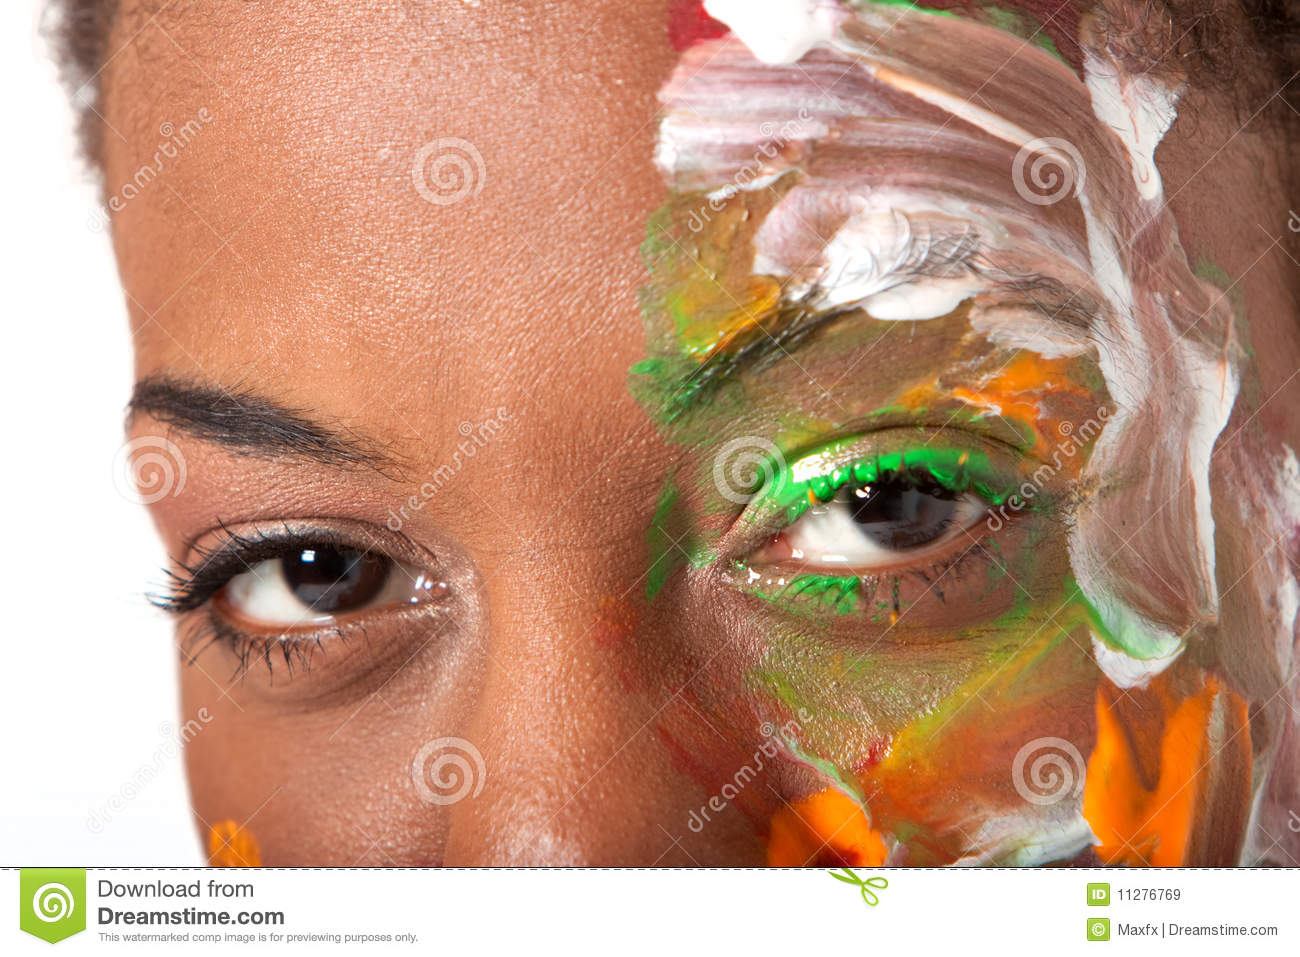 Eyes and facepaint